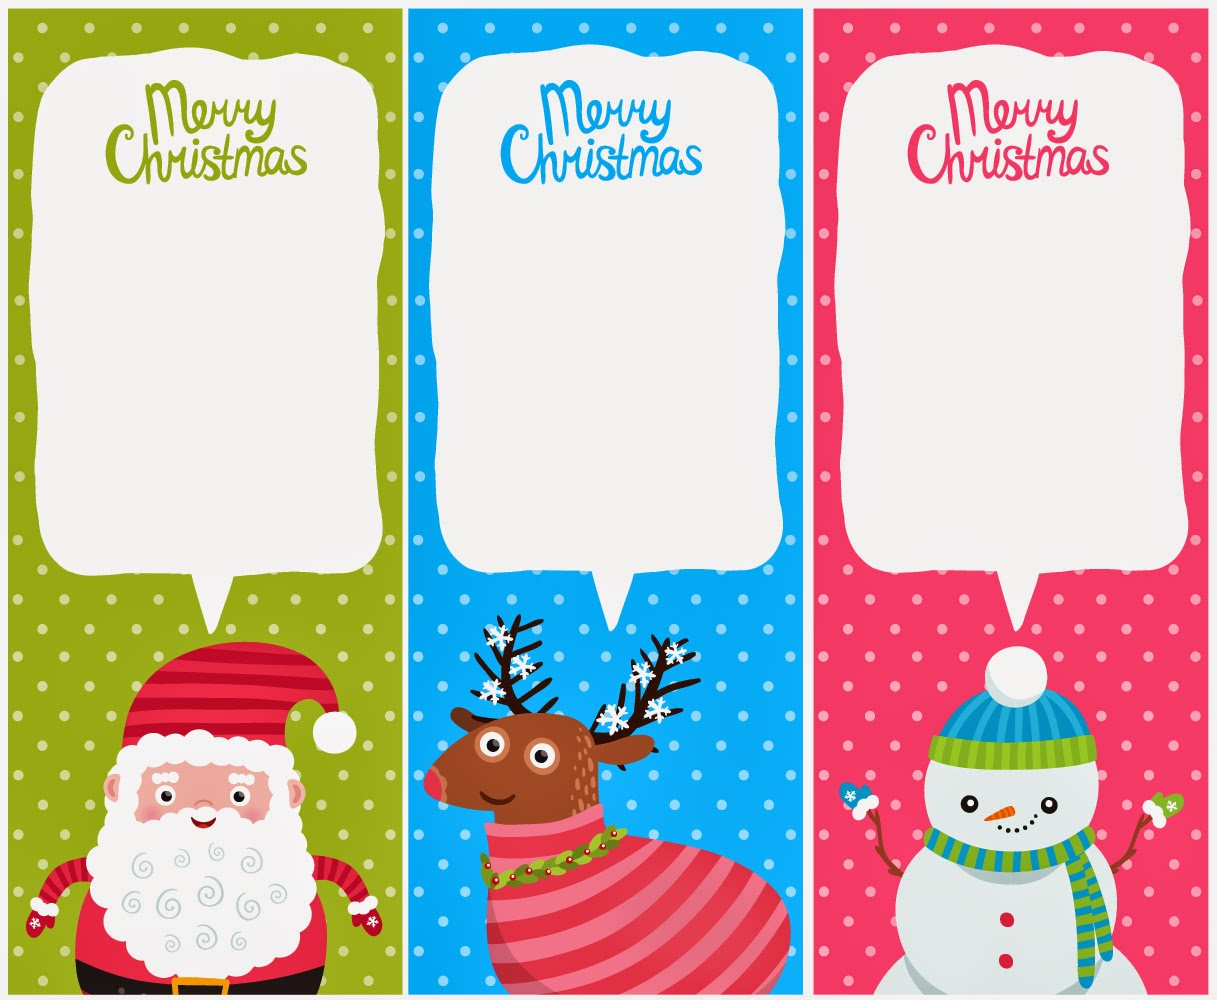 merry christmas 2014 wallpapers|merry christmas 2014 hd wallpapers